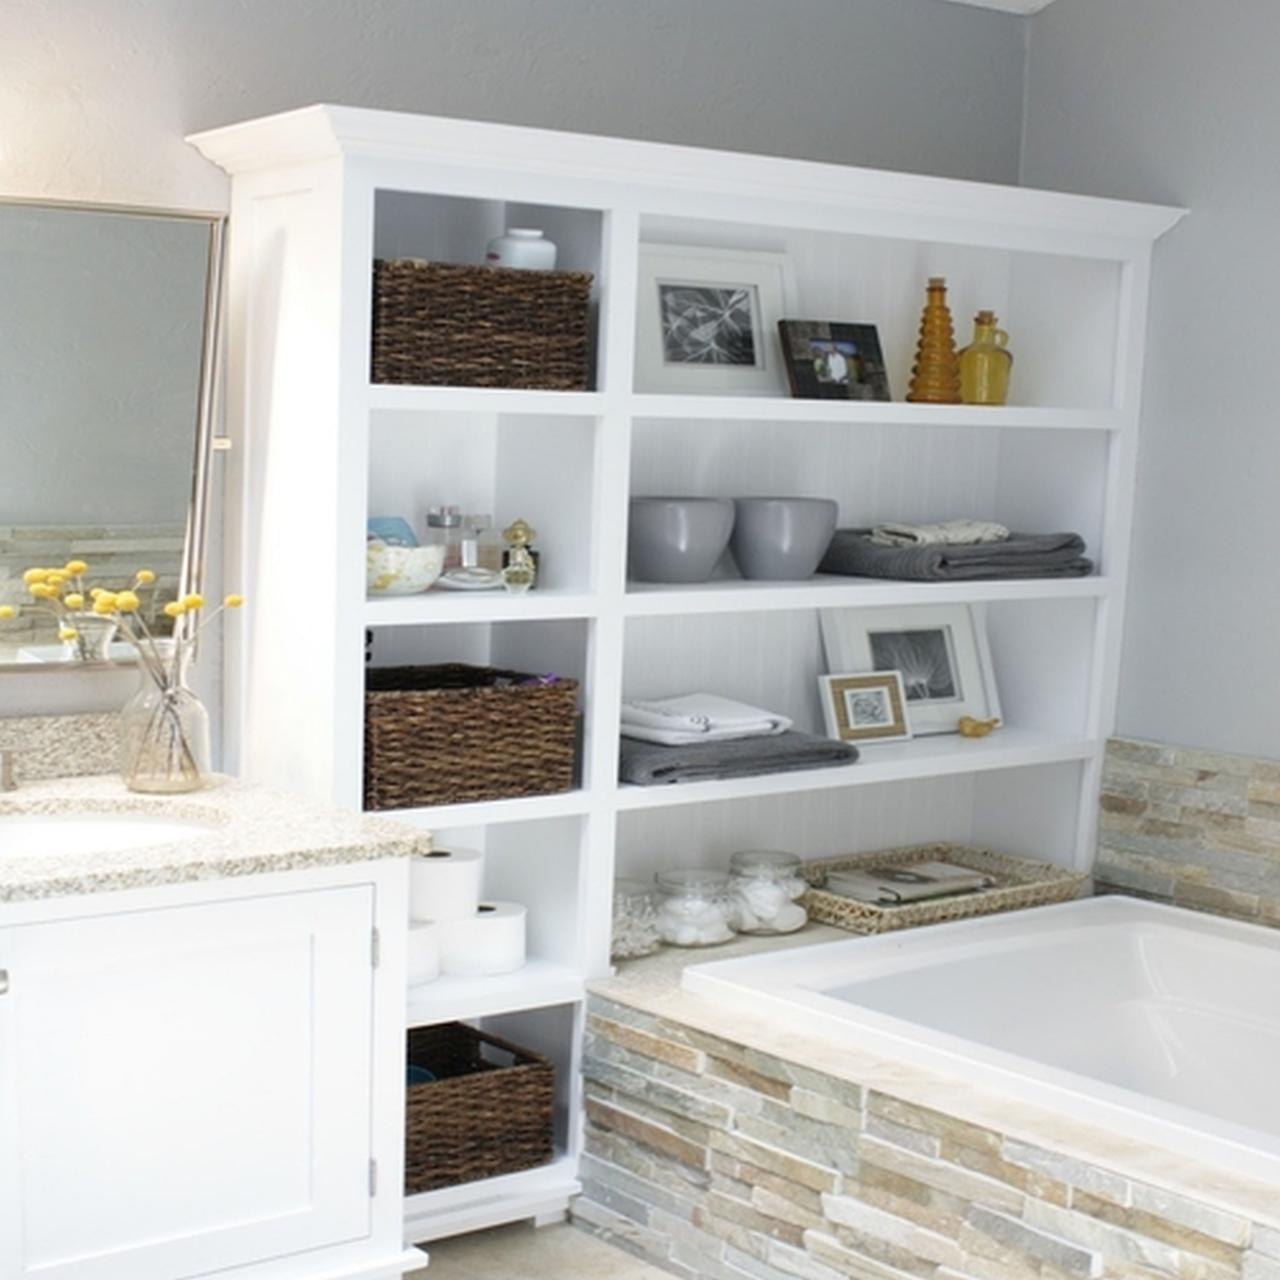 Small Cabinet with 4 Racks for Maximize Your Small Storage Bathroom